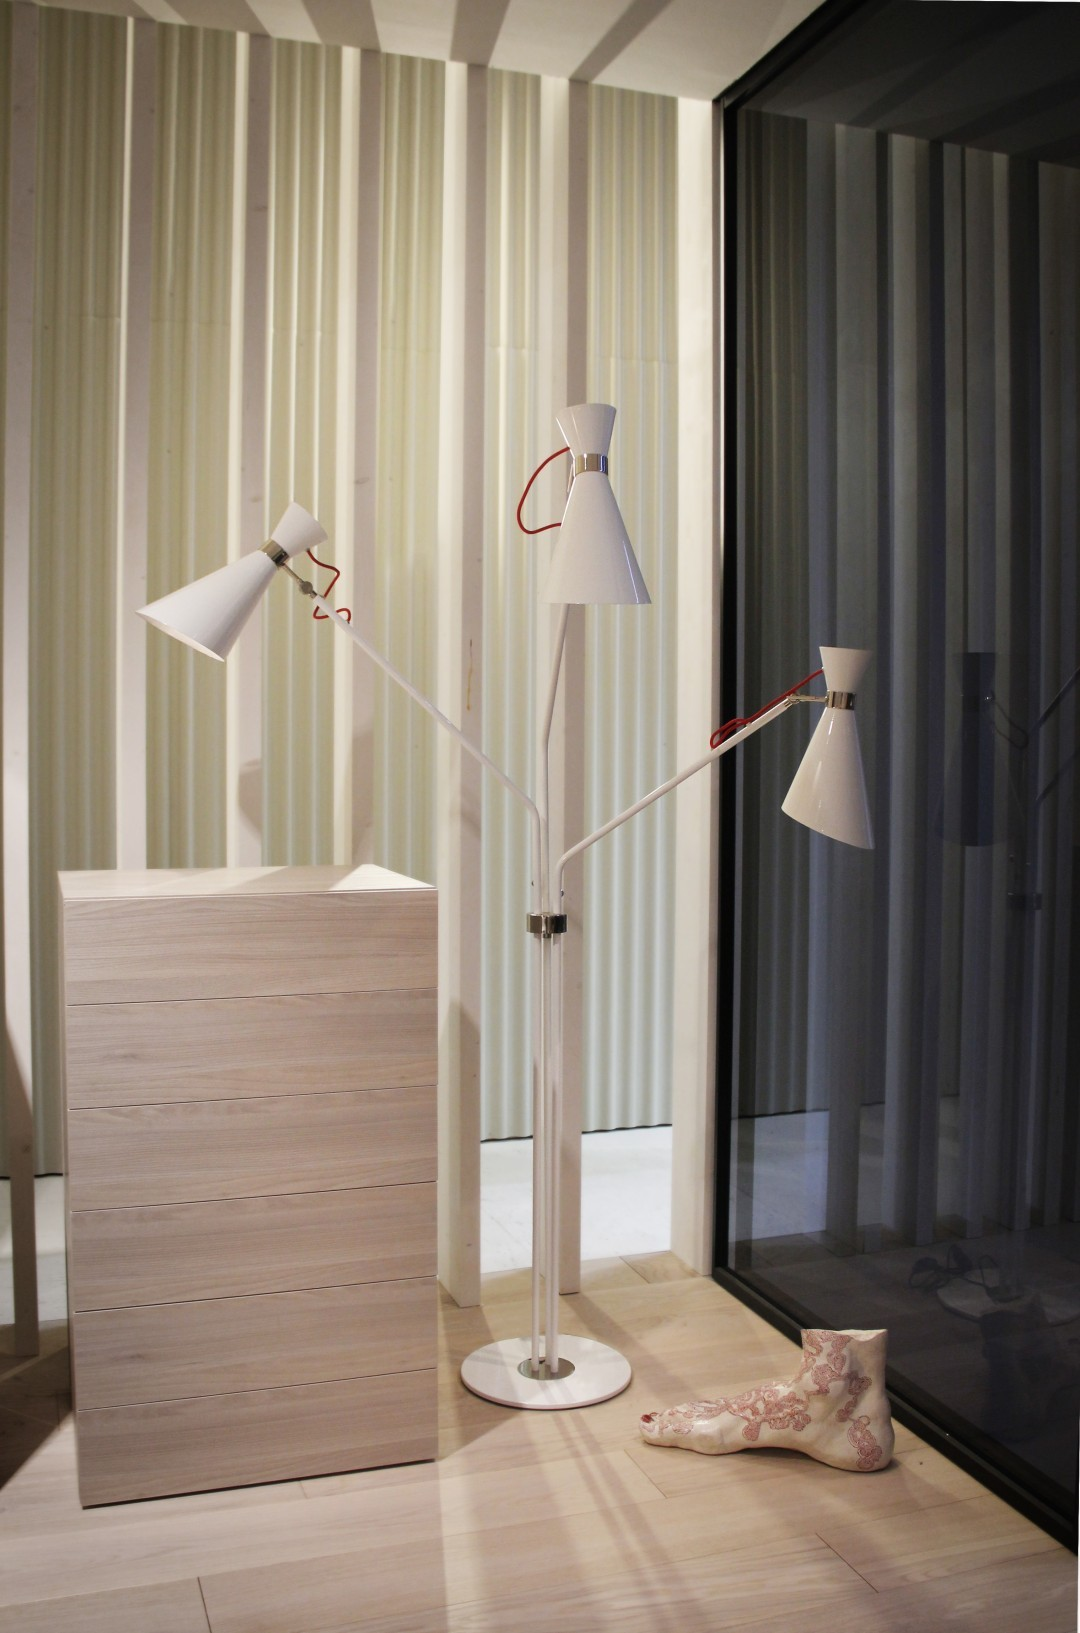 Simone Floor Lamp simone floor lamp Enter In The Jazzy World  Of Simone Floor Lamp! EnterIn The Jazzy World Of Simone Floor Lamp 2